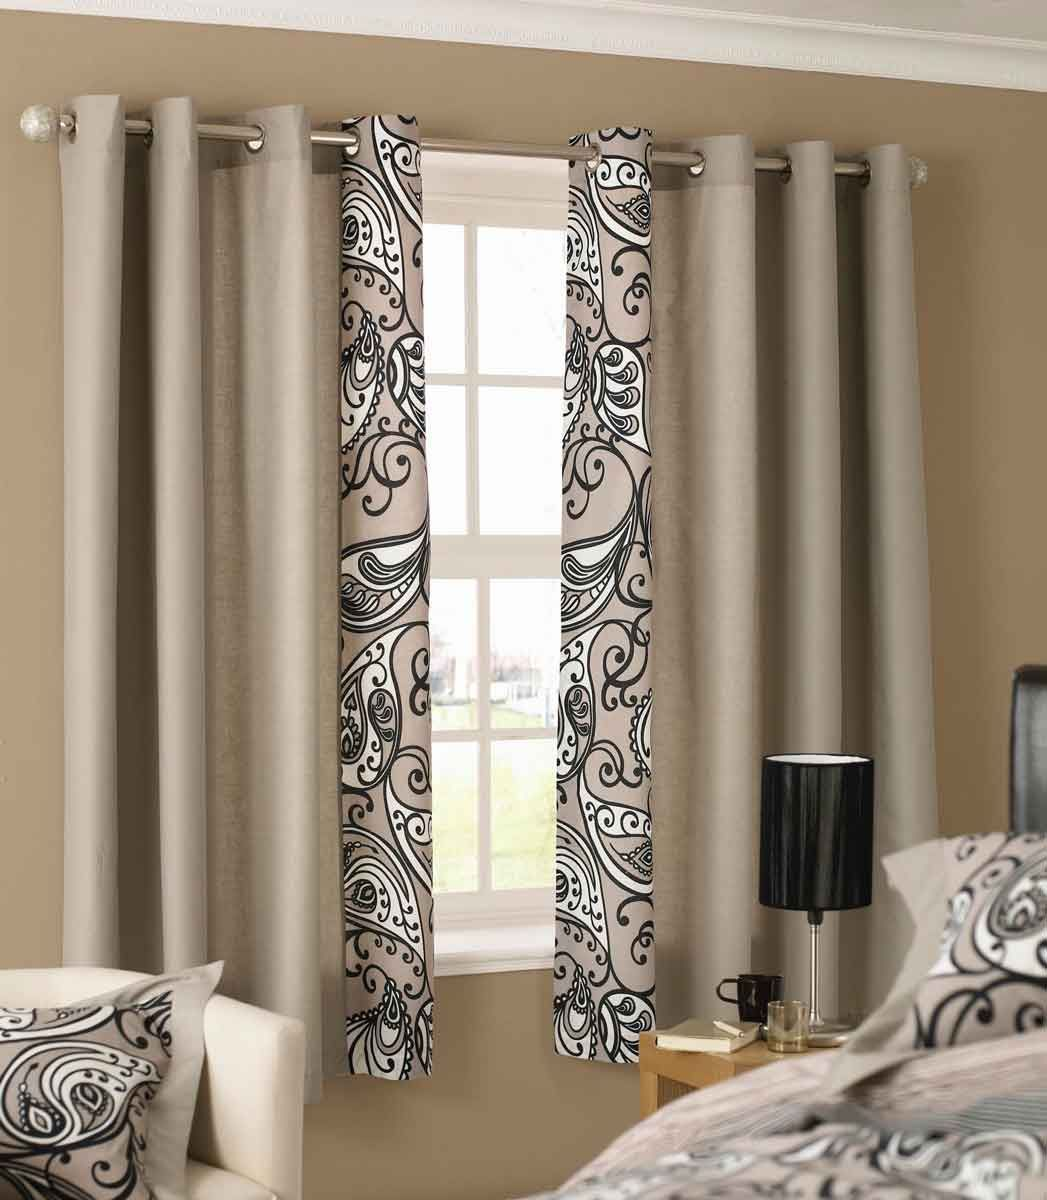 Dress Your Windows in Classy and Timeless Curtains | Window ...